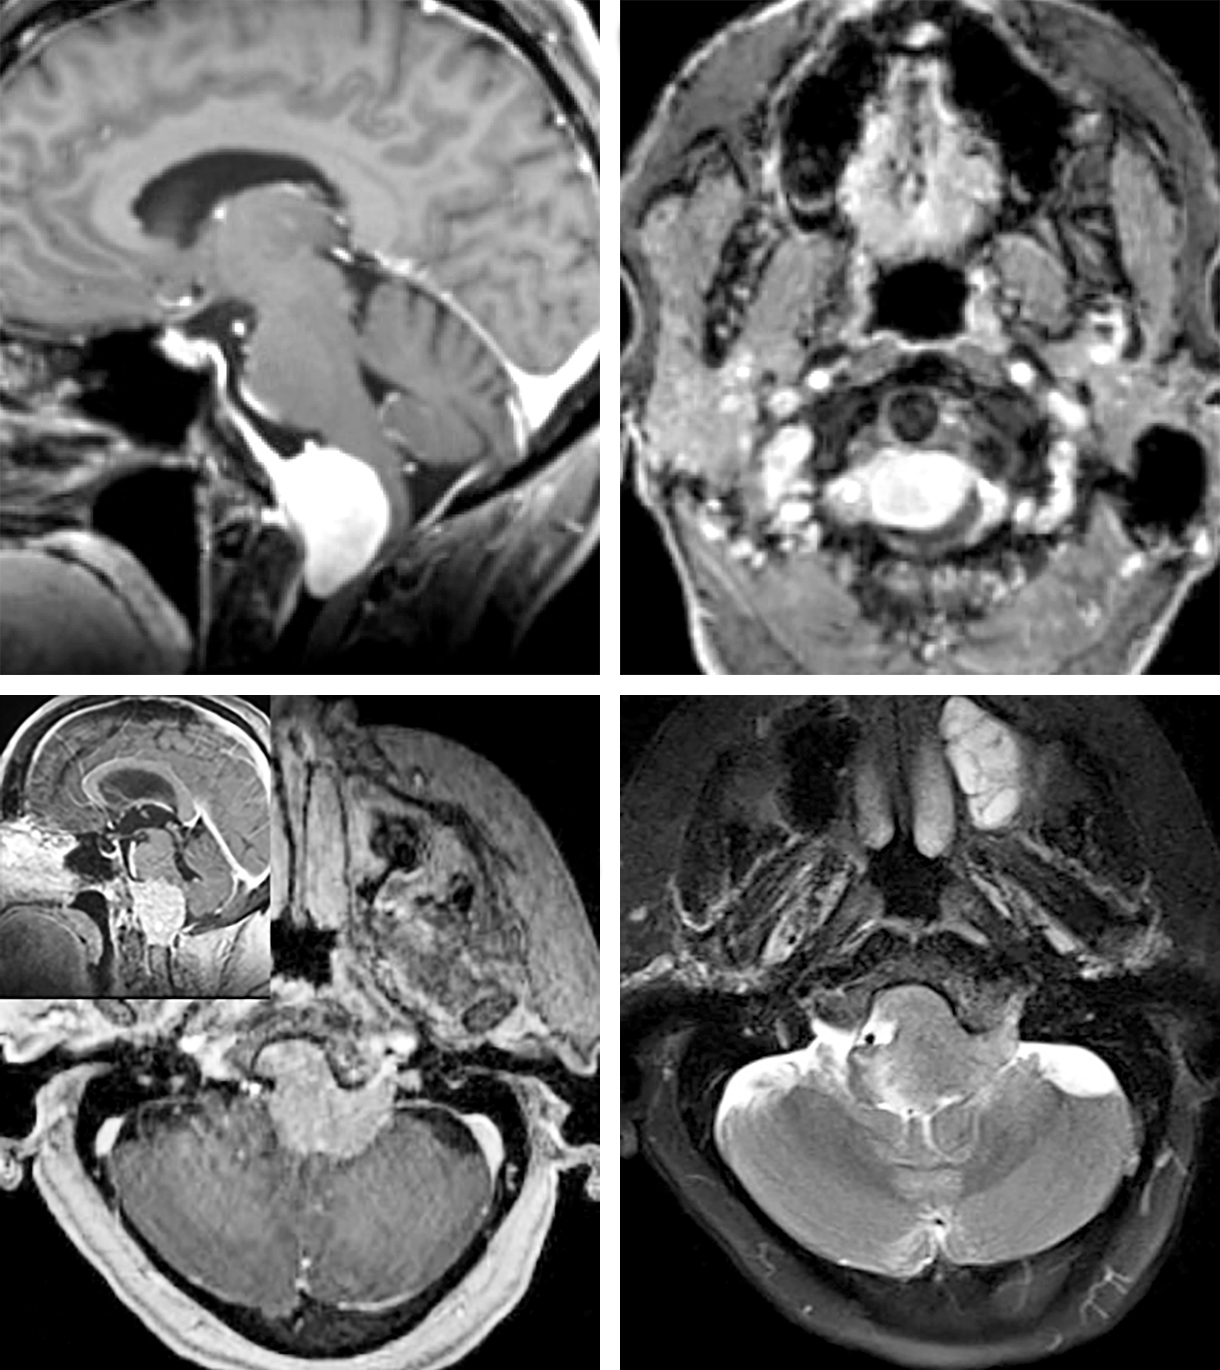 Figure 2: A classic ventral foramen magnum meningioma with a dural tail along the clivus is demonstrated (top row). This tumor was resected using the conservative transcondylar approach described in the following paragraphs. These tumors can infiltrate the jugular foramen and increase the risk of operative intervention. The presence of brainstem edema indicates pial infiltration by the tumor, requiring subtotal resection for preservation of neurological function (another patient, bottom row).